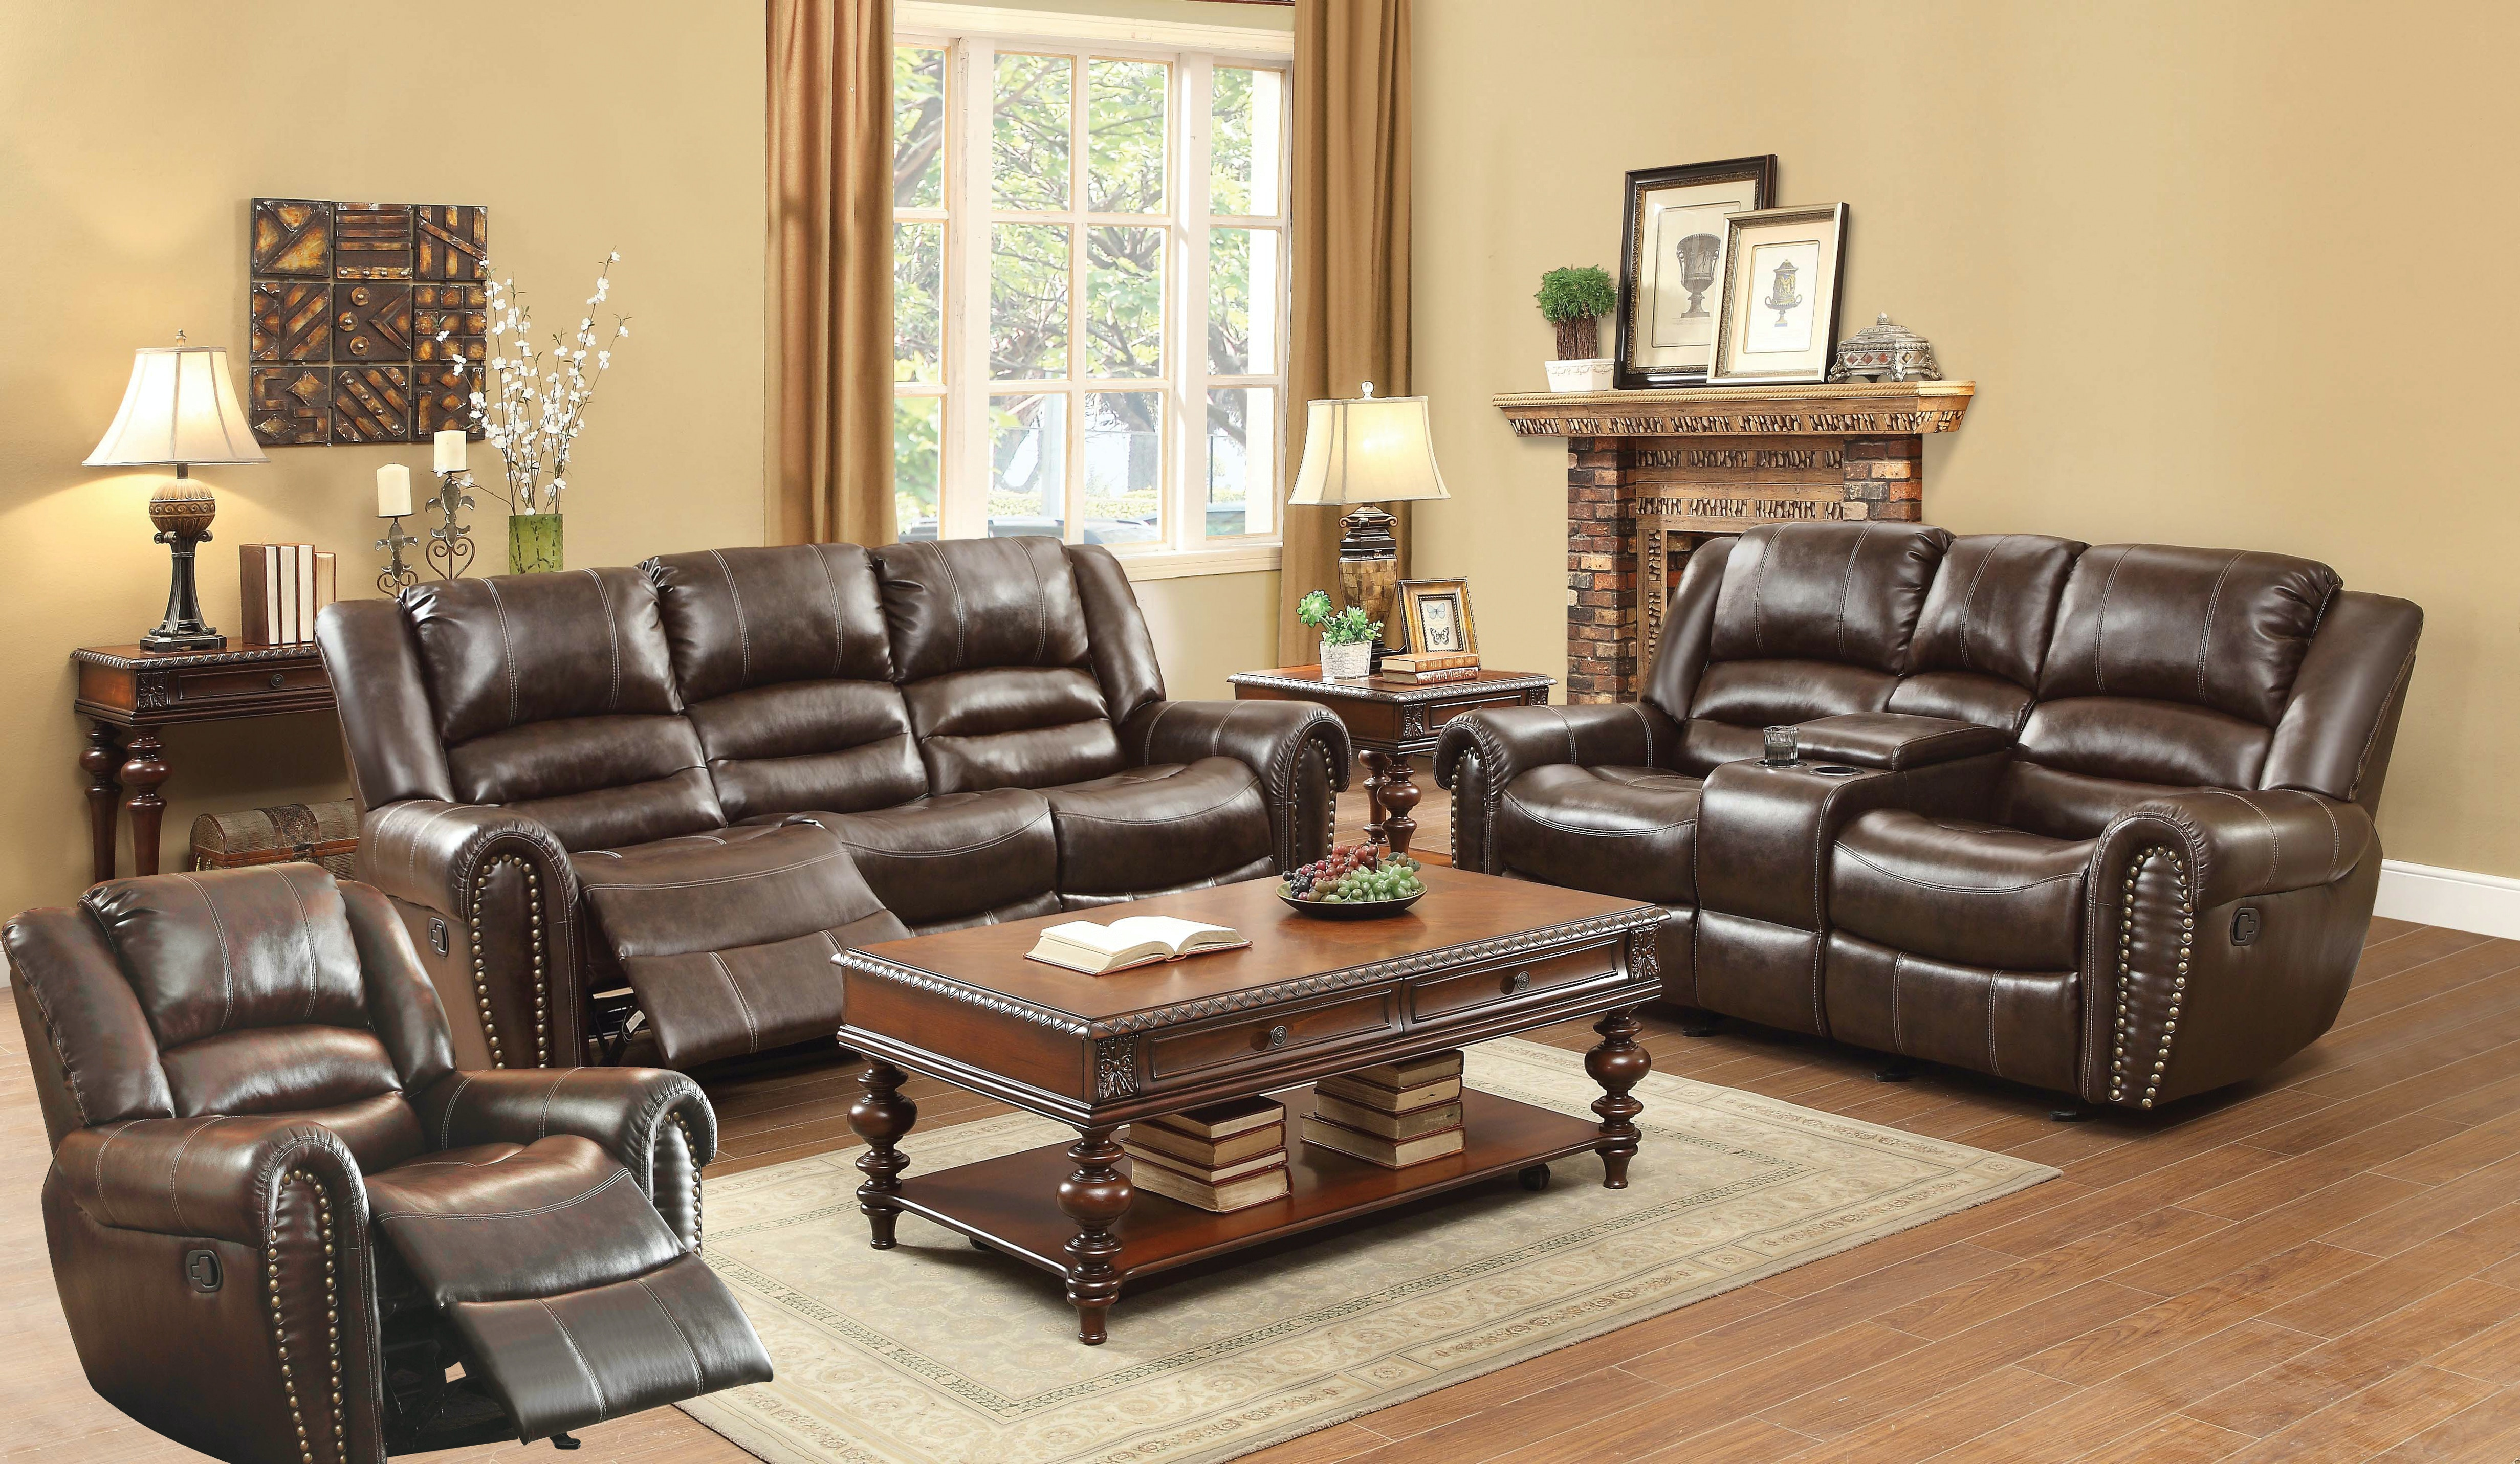 Homelegance Dallas Living Room Group Furniture